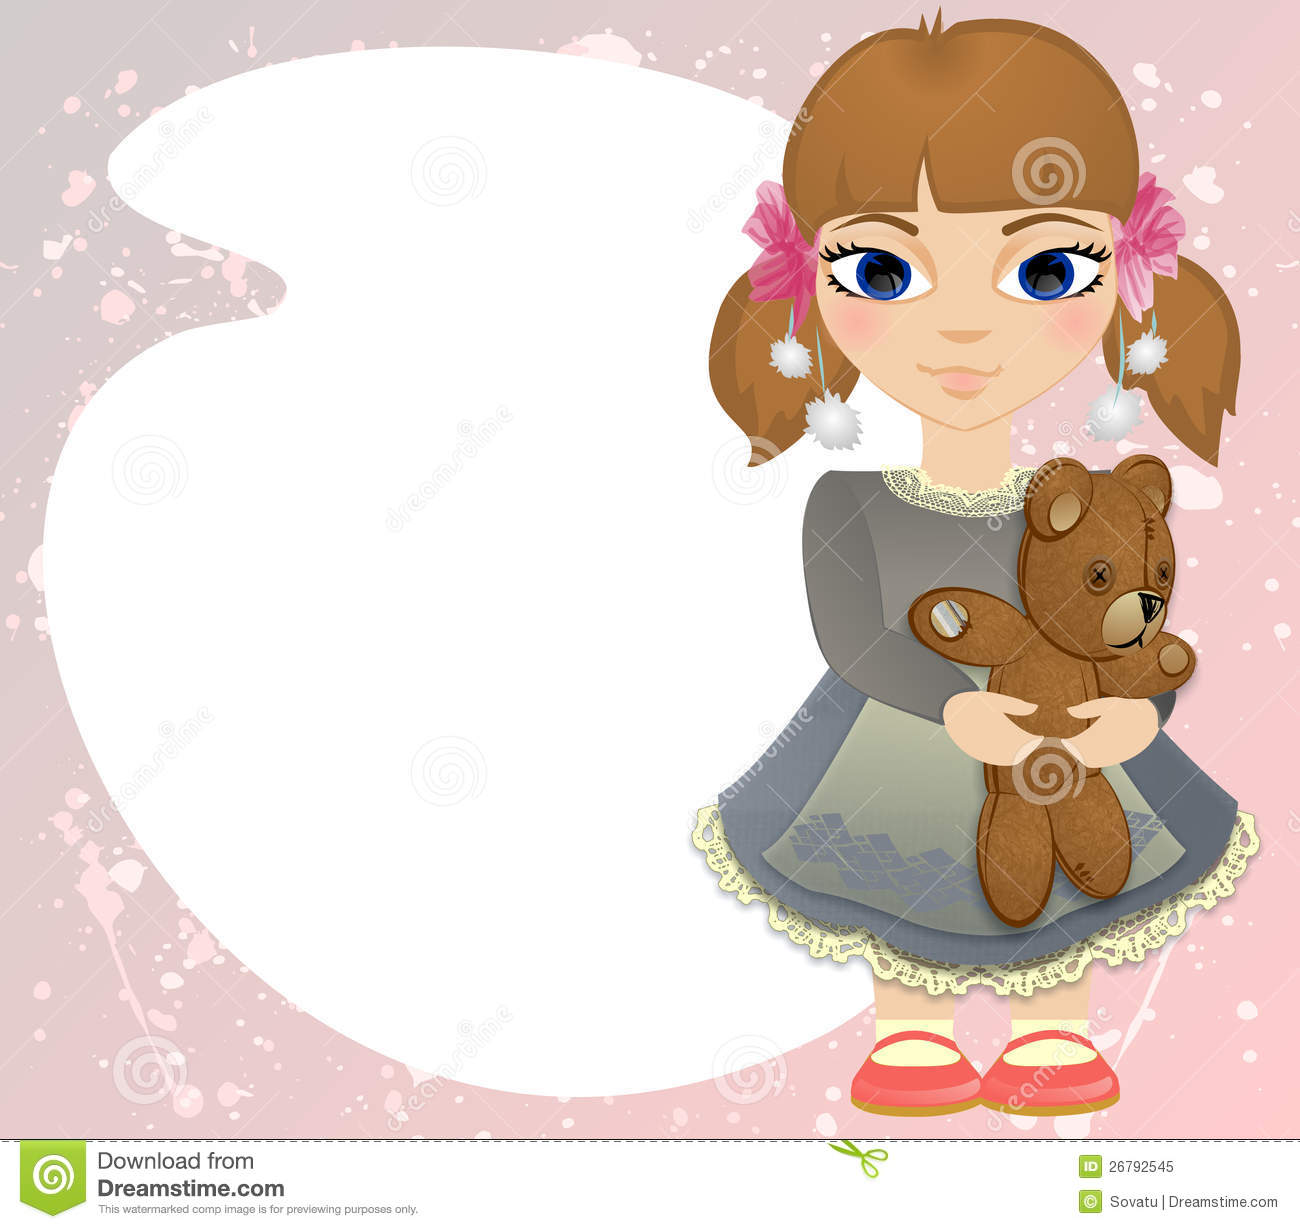 Illustration Of Little Girl With Bear On Pink Background With Place